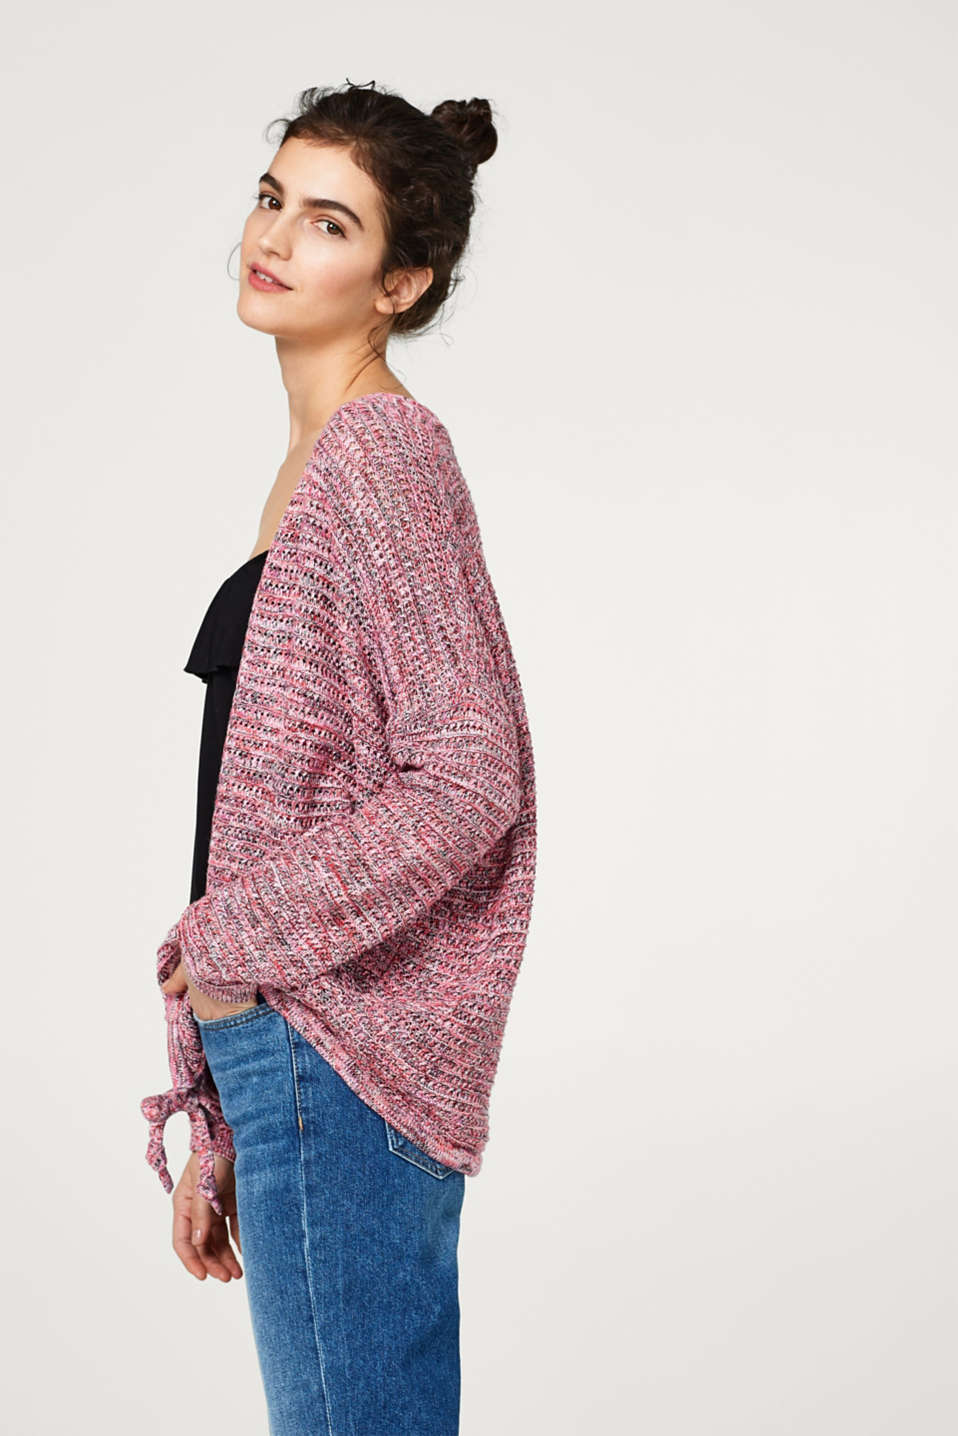 edc - Lockerer Multicolor Cardigan aus 100% Baumwolle